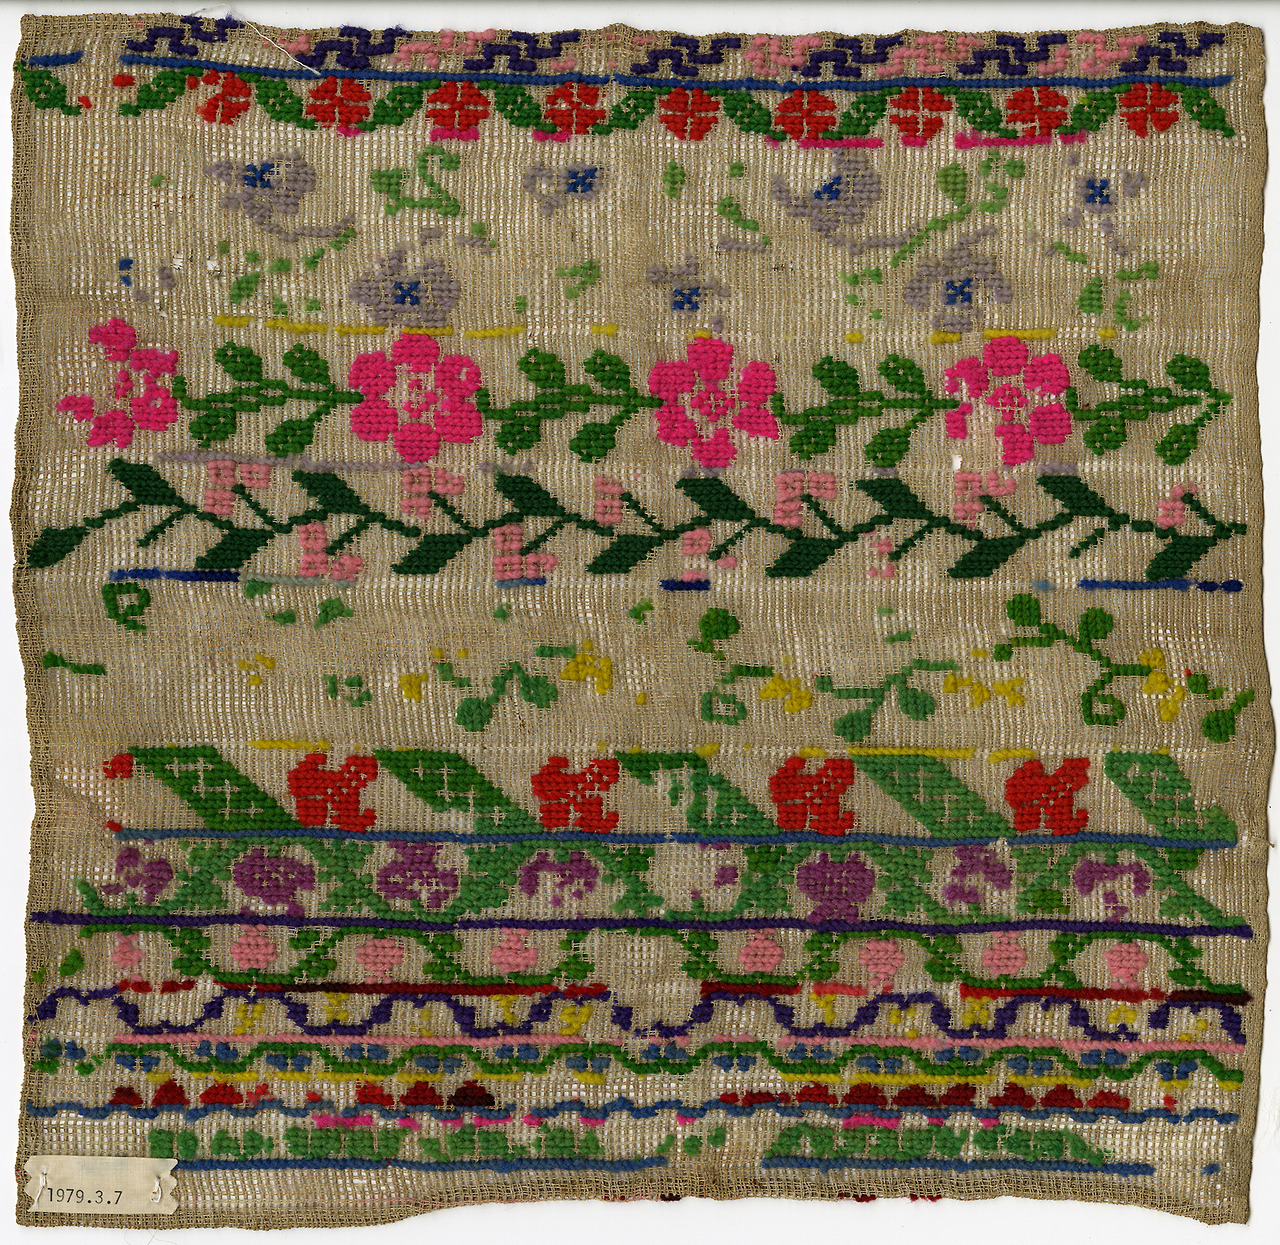 thedesigncenter: Floral embroidery. Date unknown.